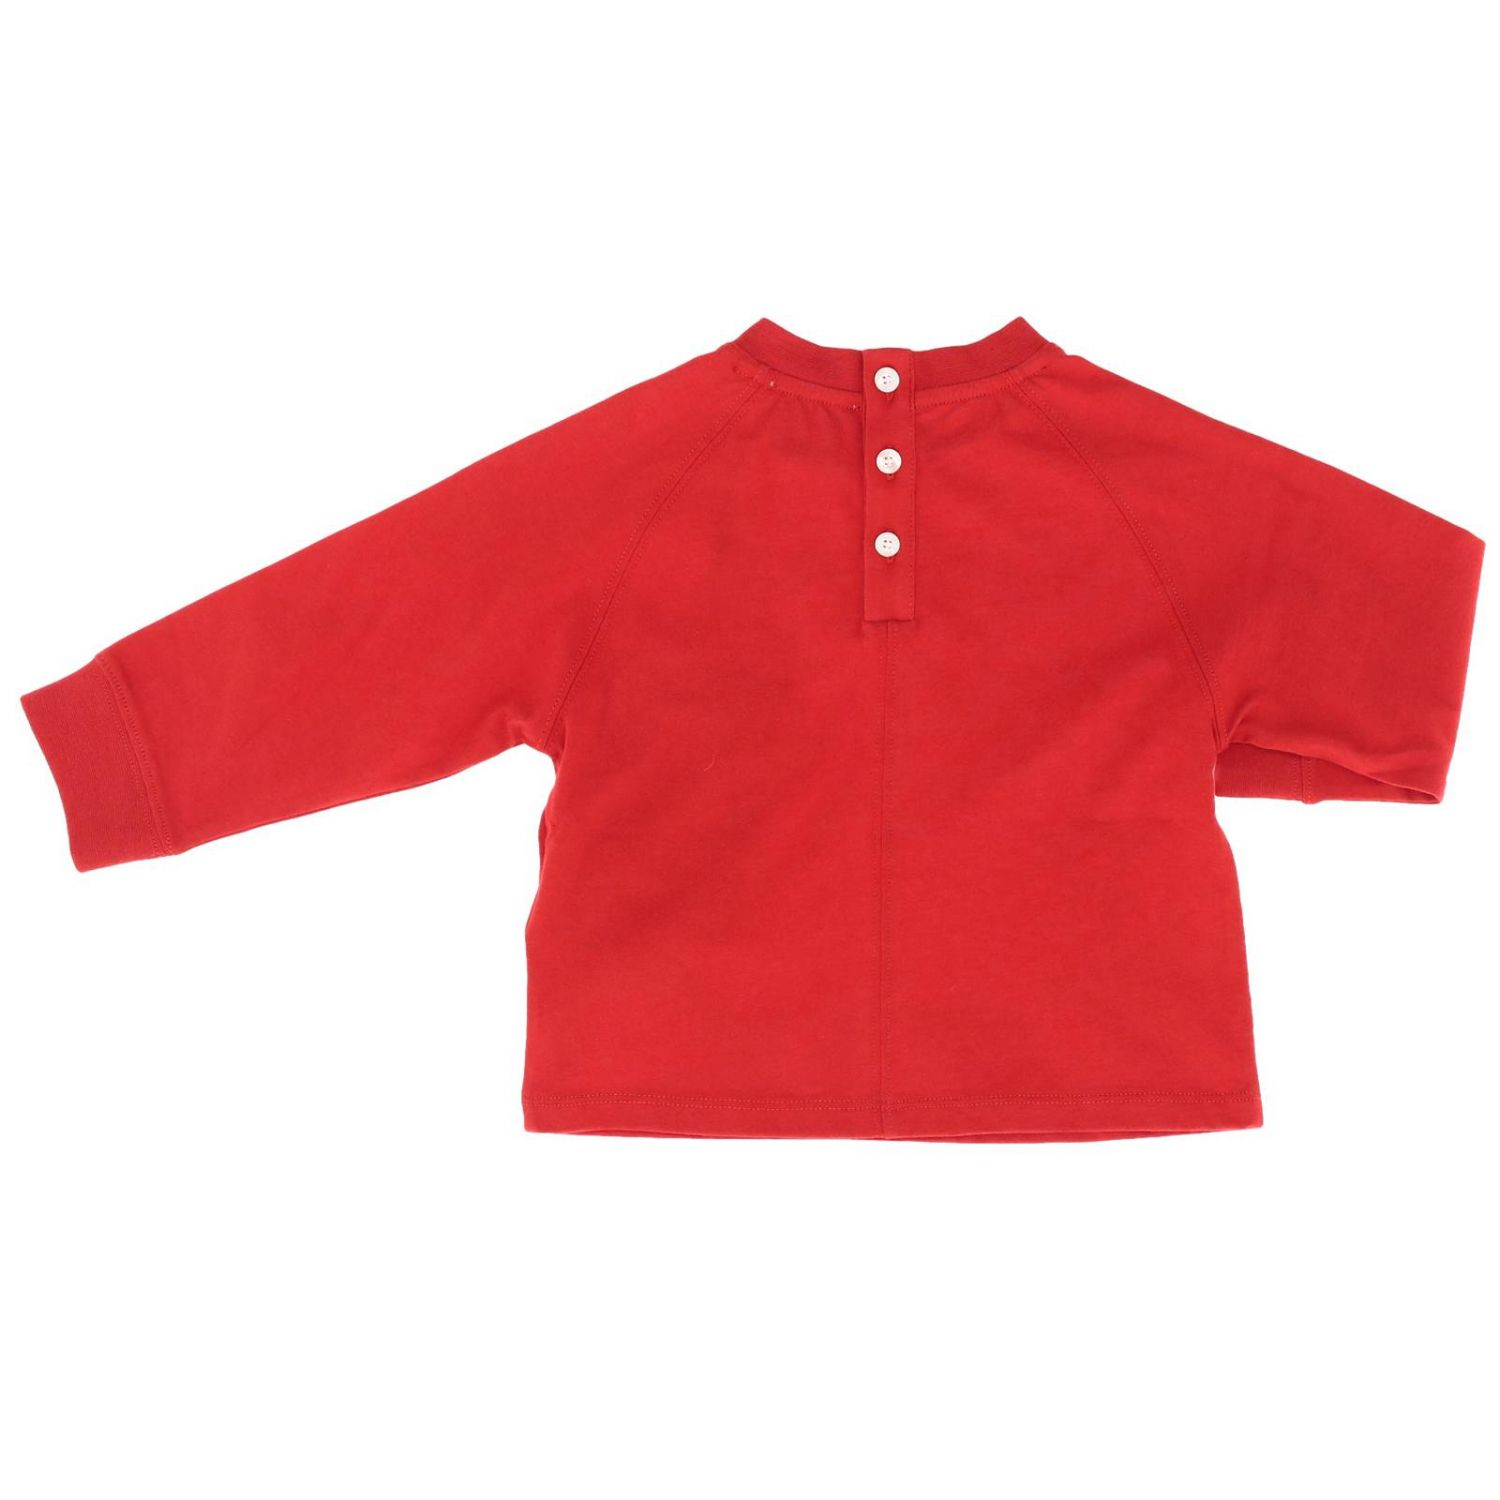 T-shirt Burberry Infant a maniche lunghe con maxi stampa logo rosso 2